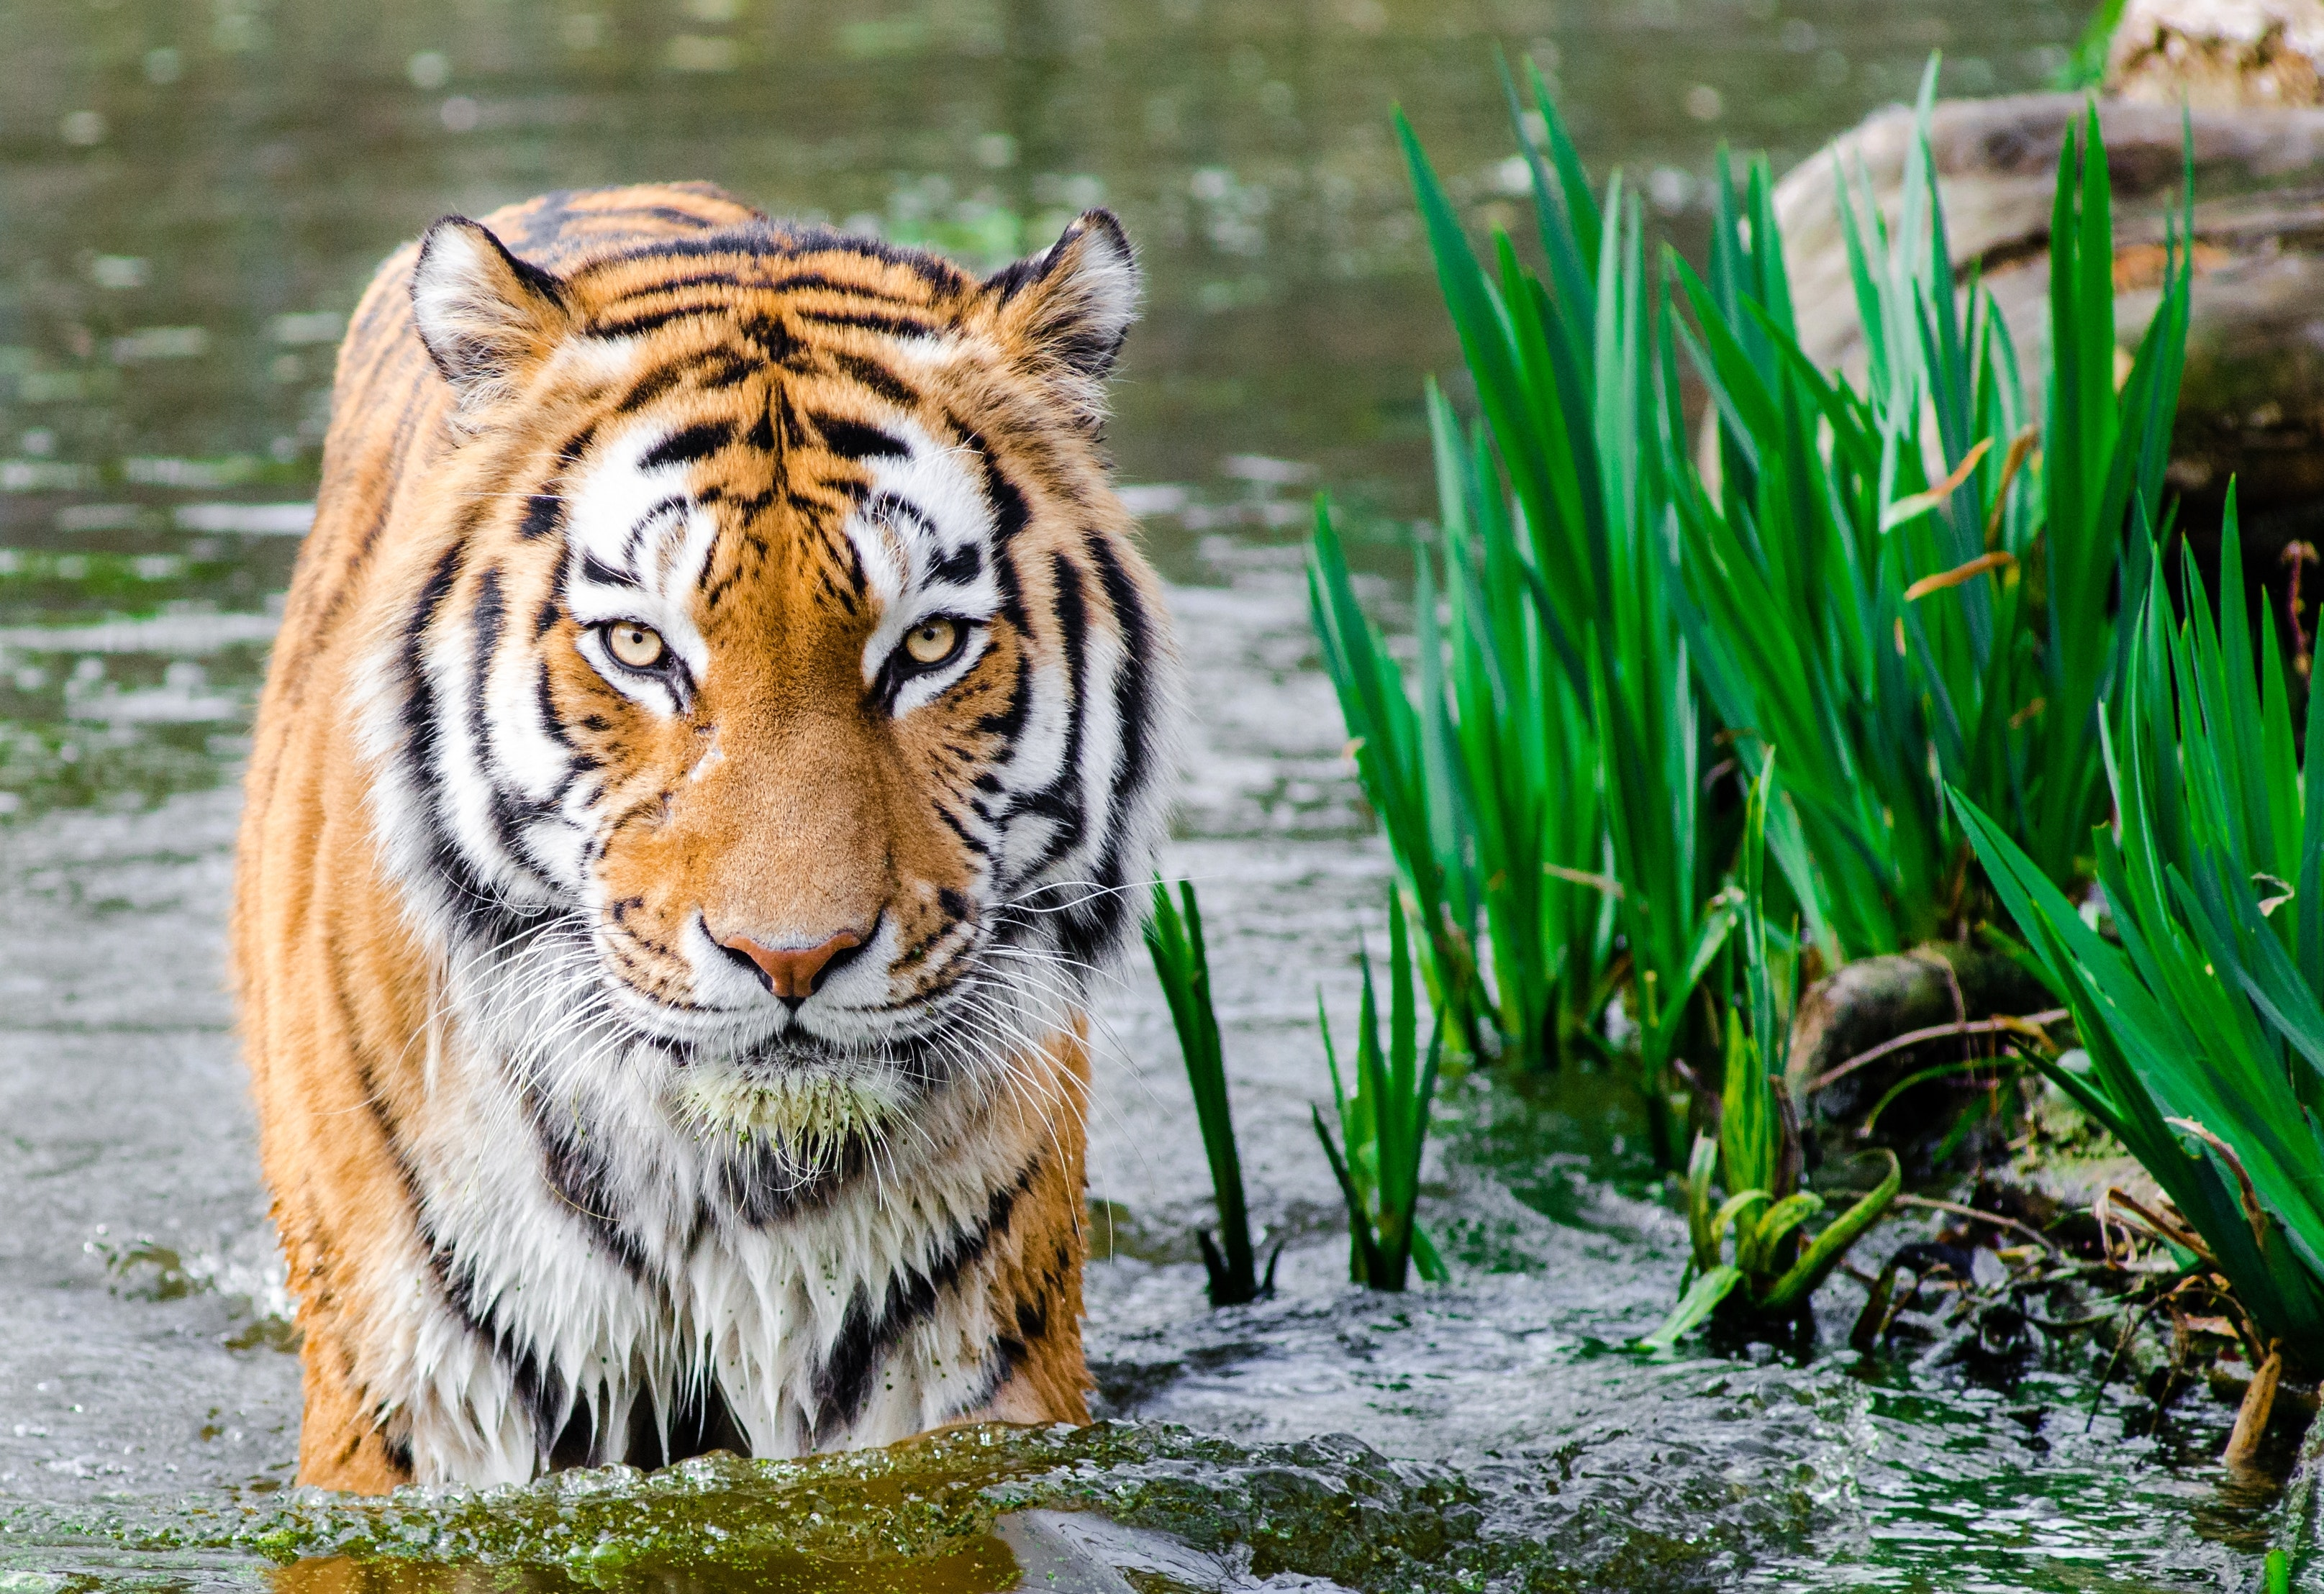 Simple Wallpaper High Resolution Tiger - pexels-photo-145939  Photograph_475858.jpg\u0026fm\u003djpg